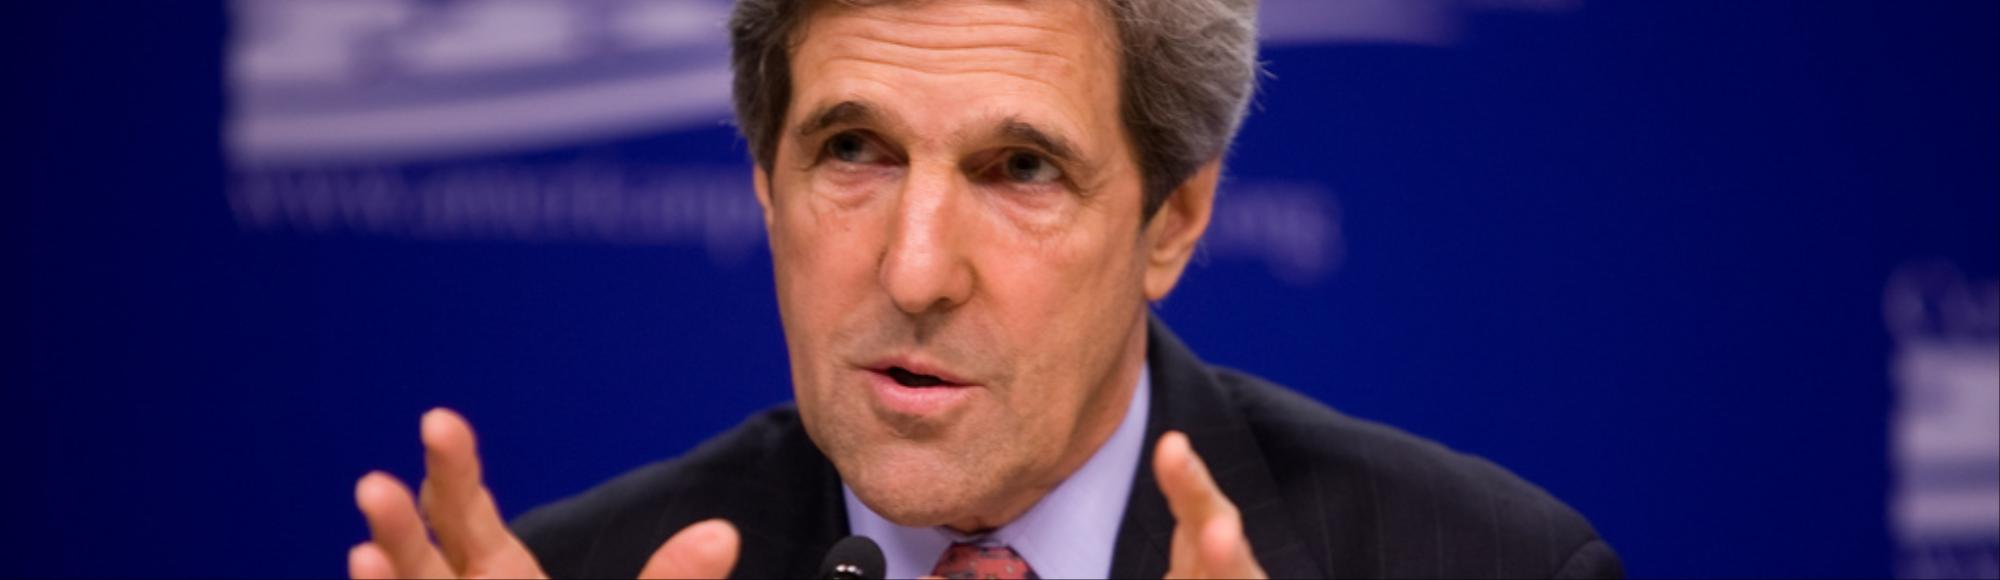 John Kerry's Latest Snowden Comments Are Moronic, Offensive, and Dangerous